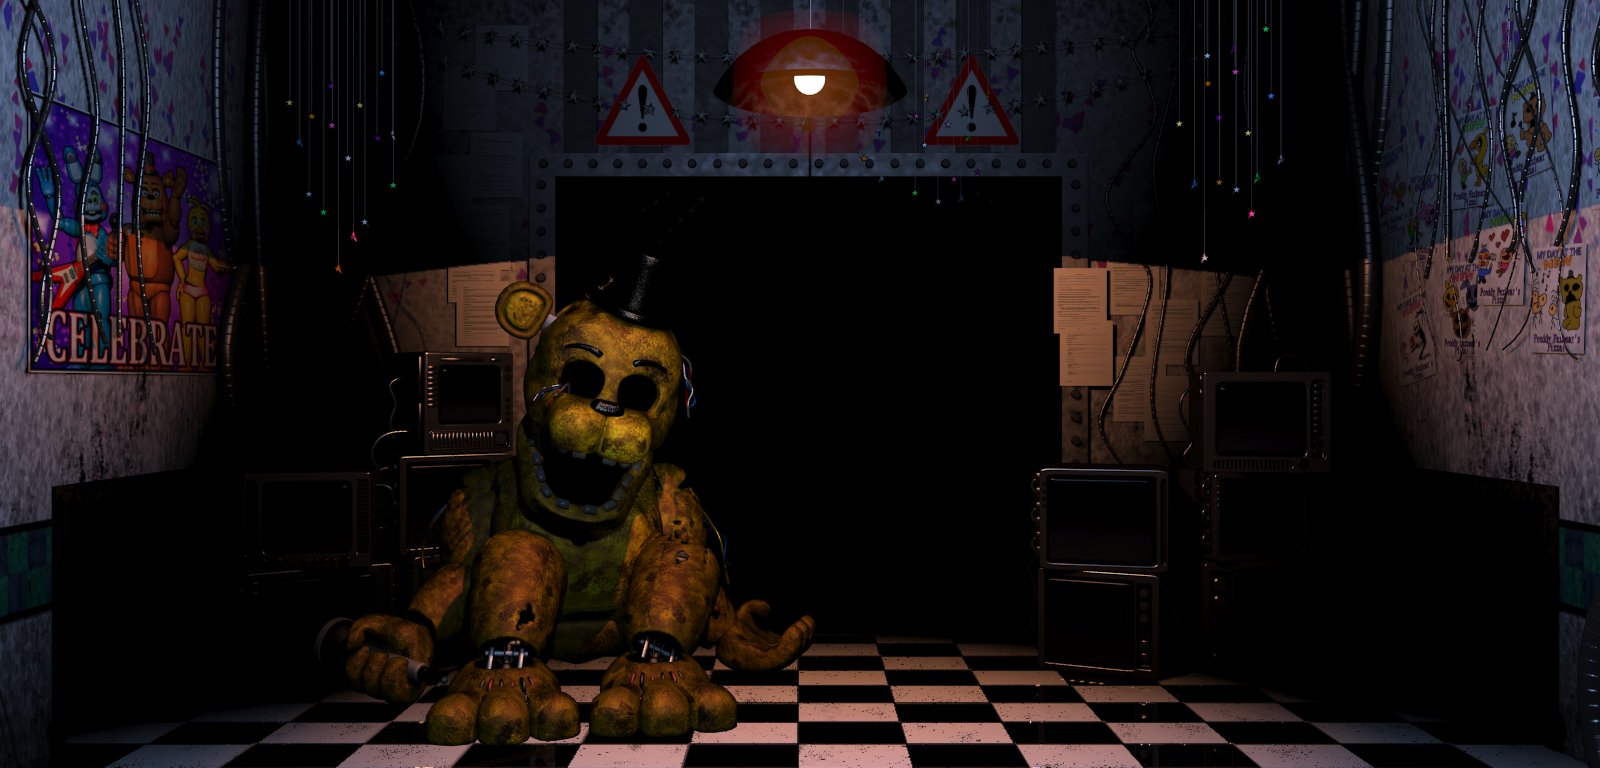 Golden freddy fnaf 2 wiki five nights at freddy 39 s for Cleaning out deceased parents home